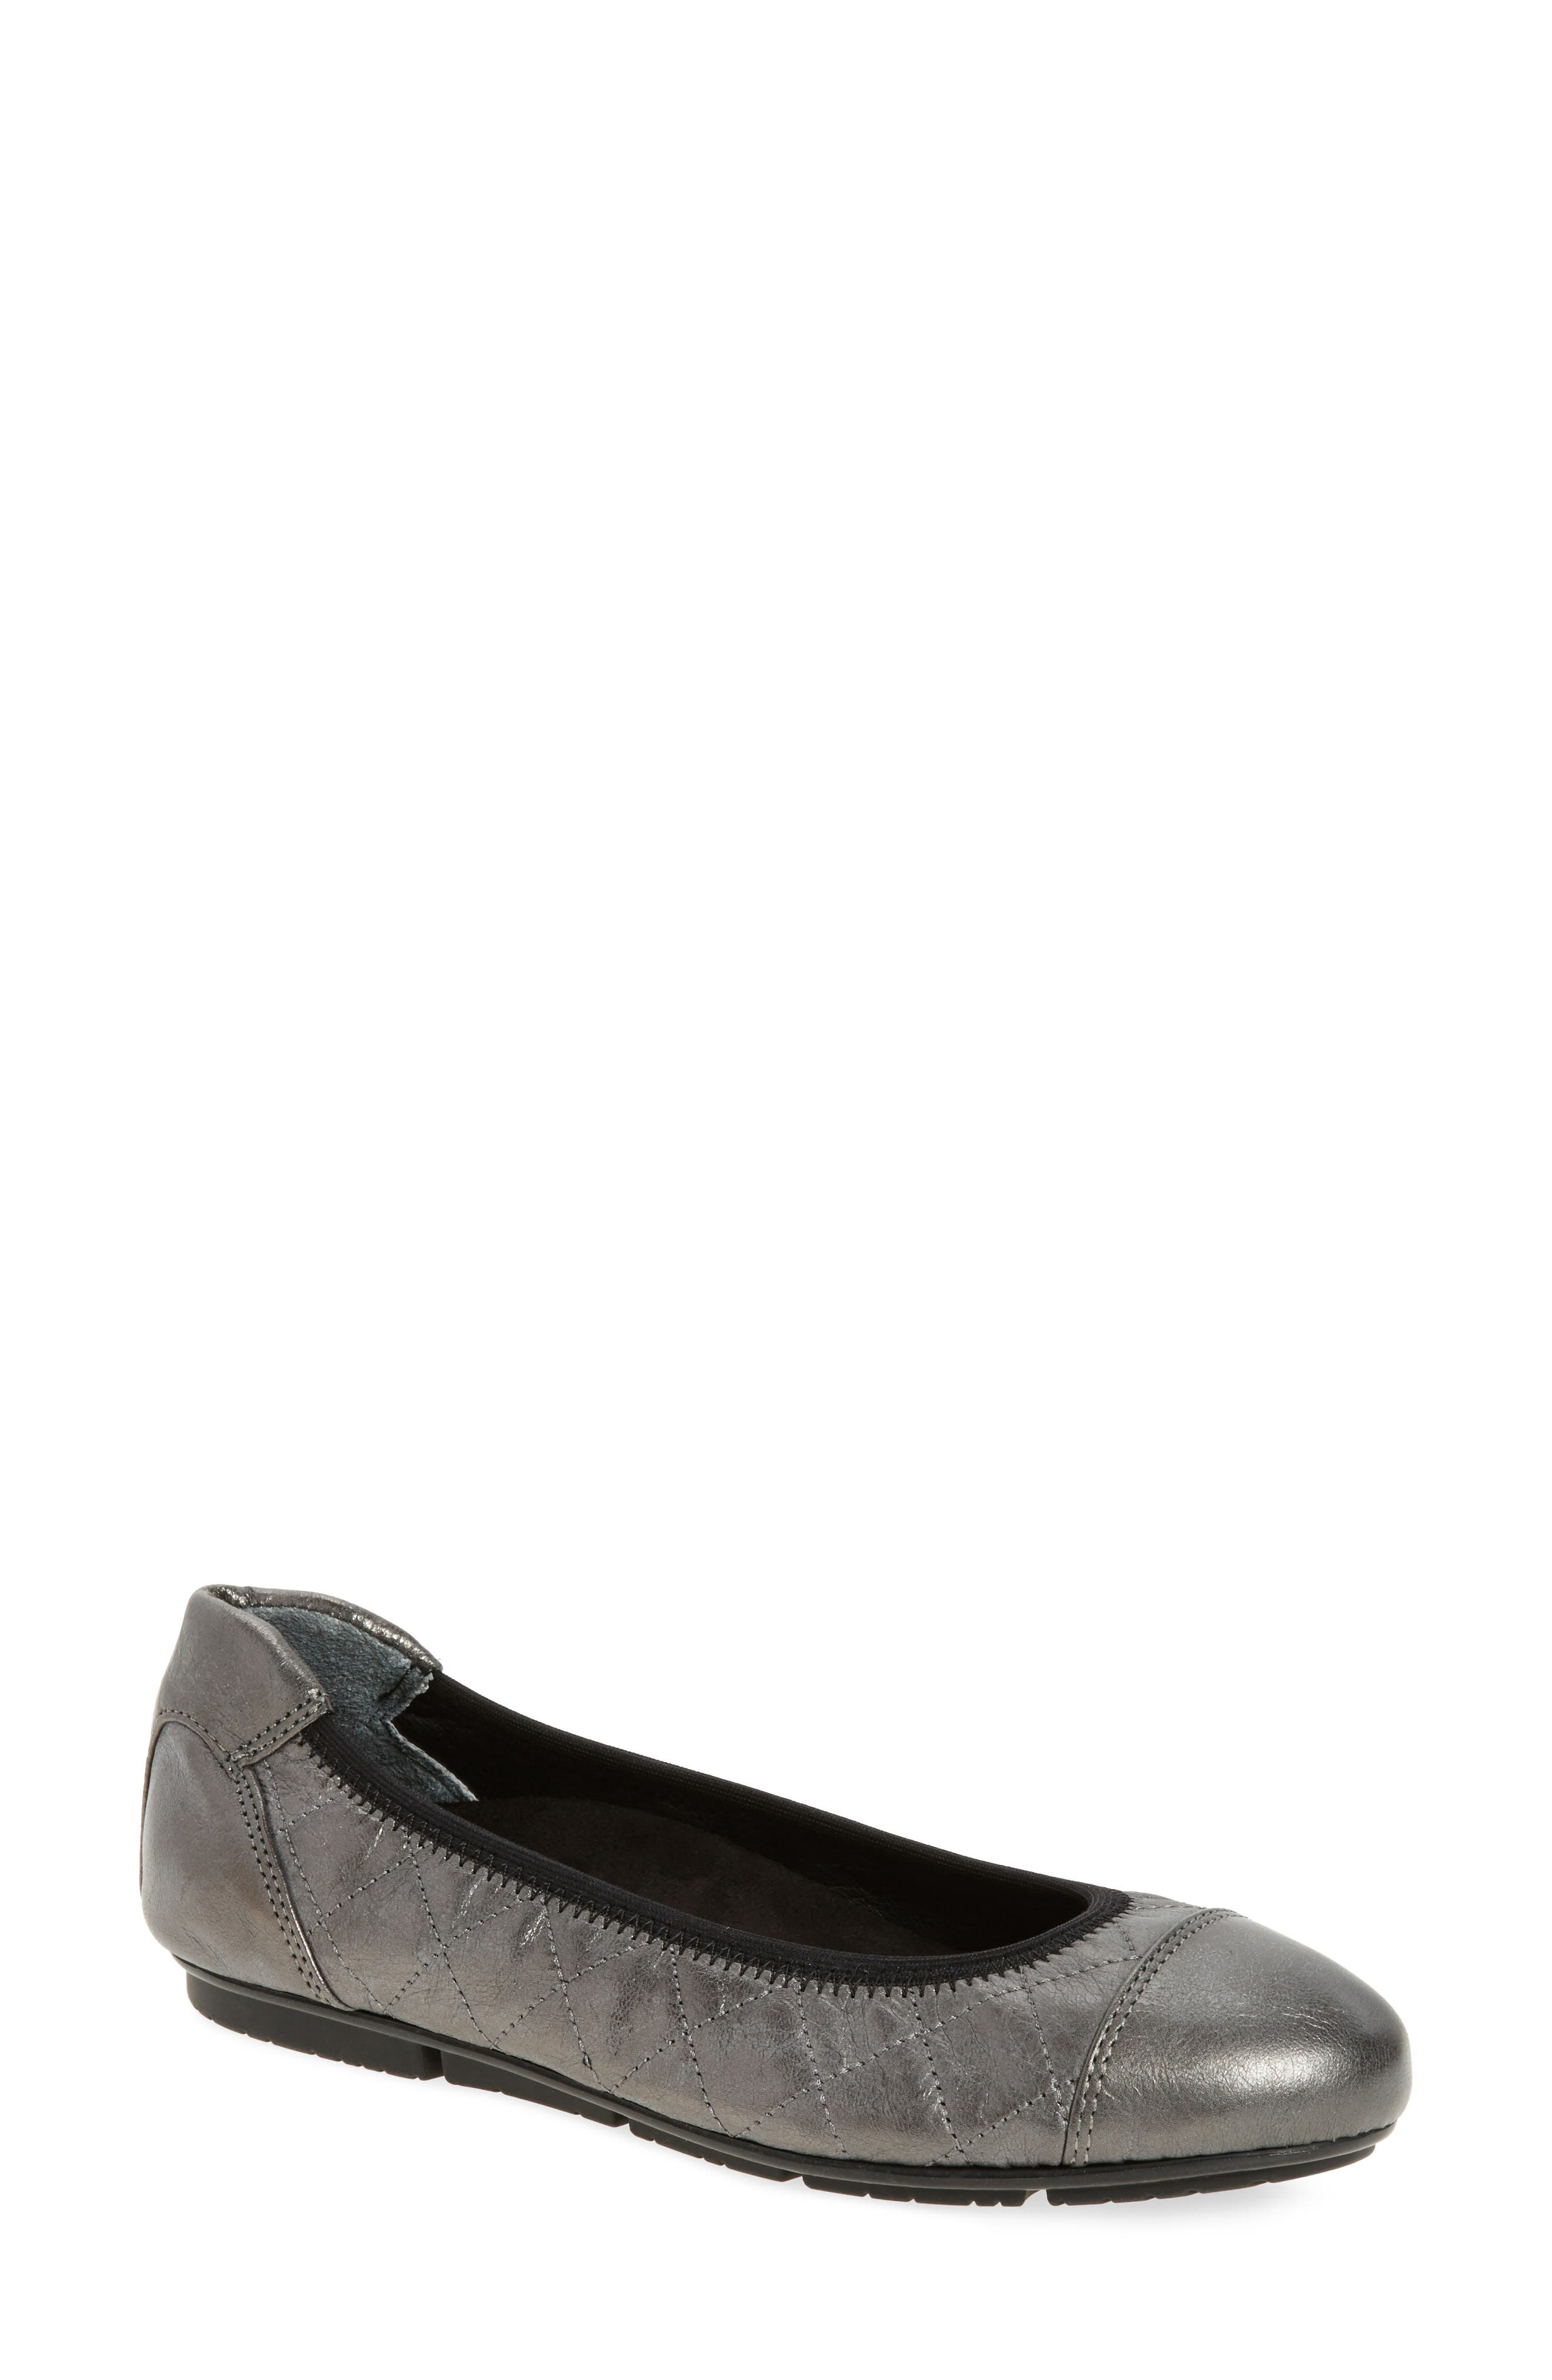 Alternate Image 1 Selected - Vionic Ava Quilted Ballet Flat (Women)